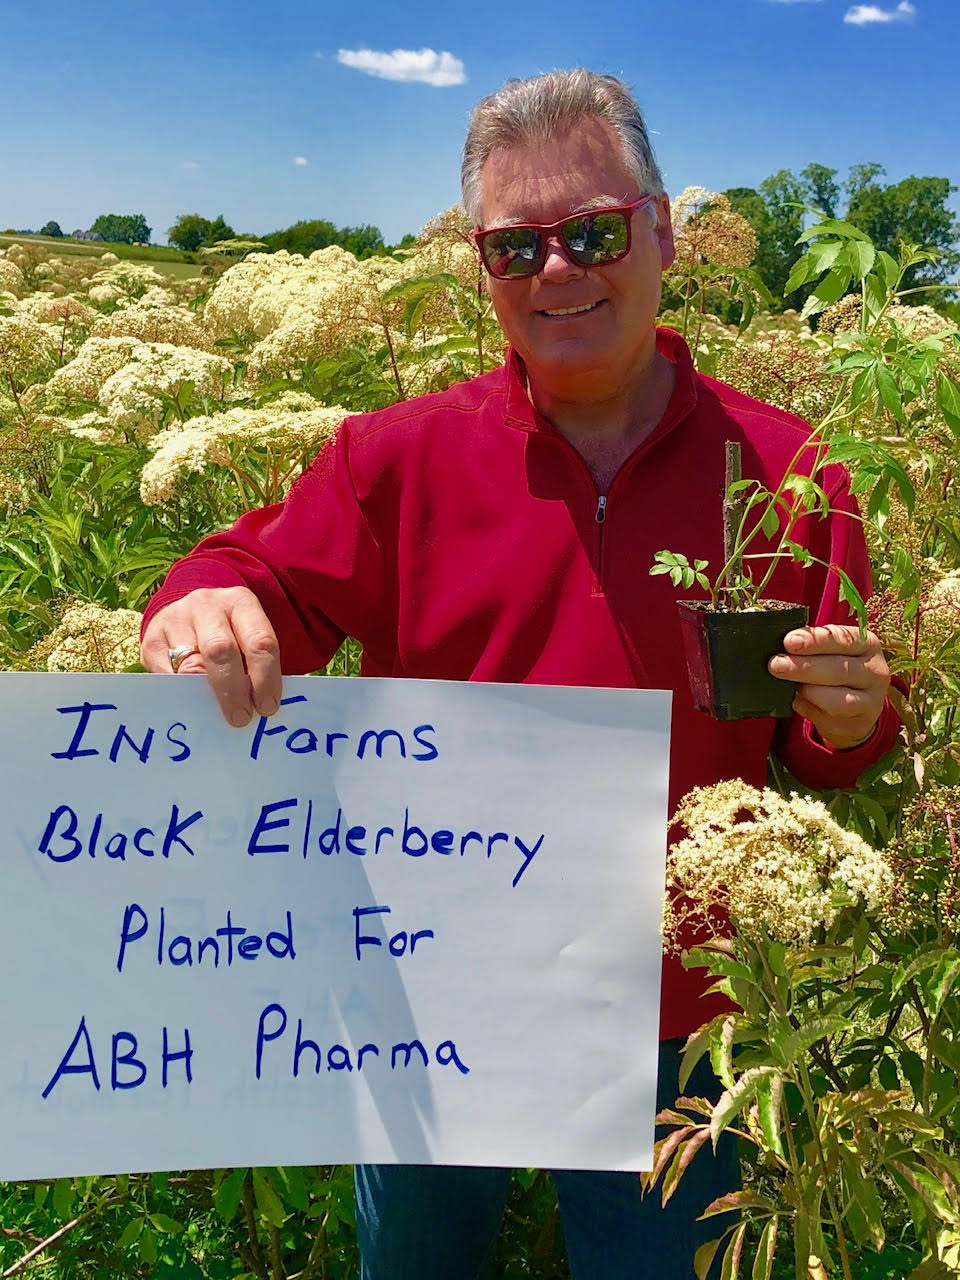 Plant-Elderberry-ABH-Pharma.jpg